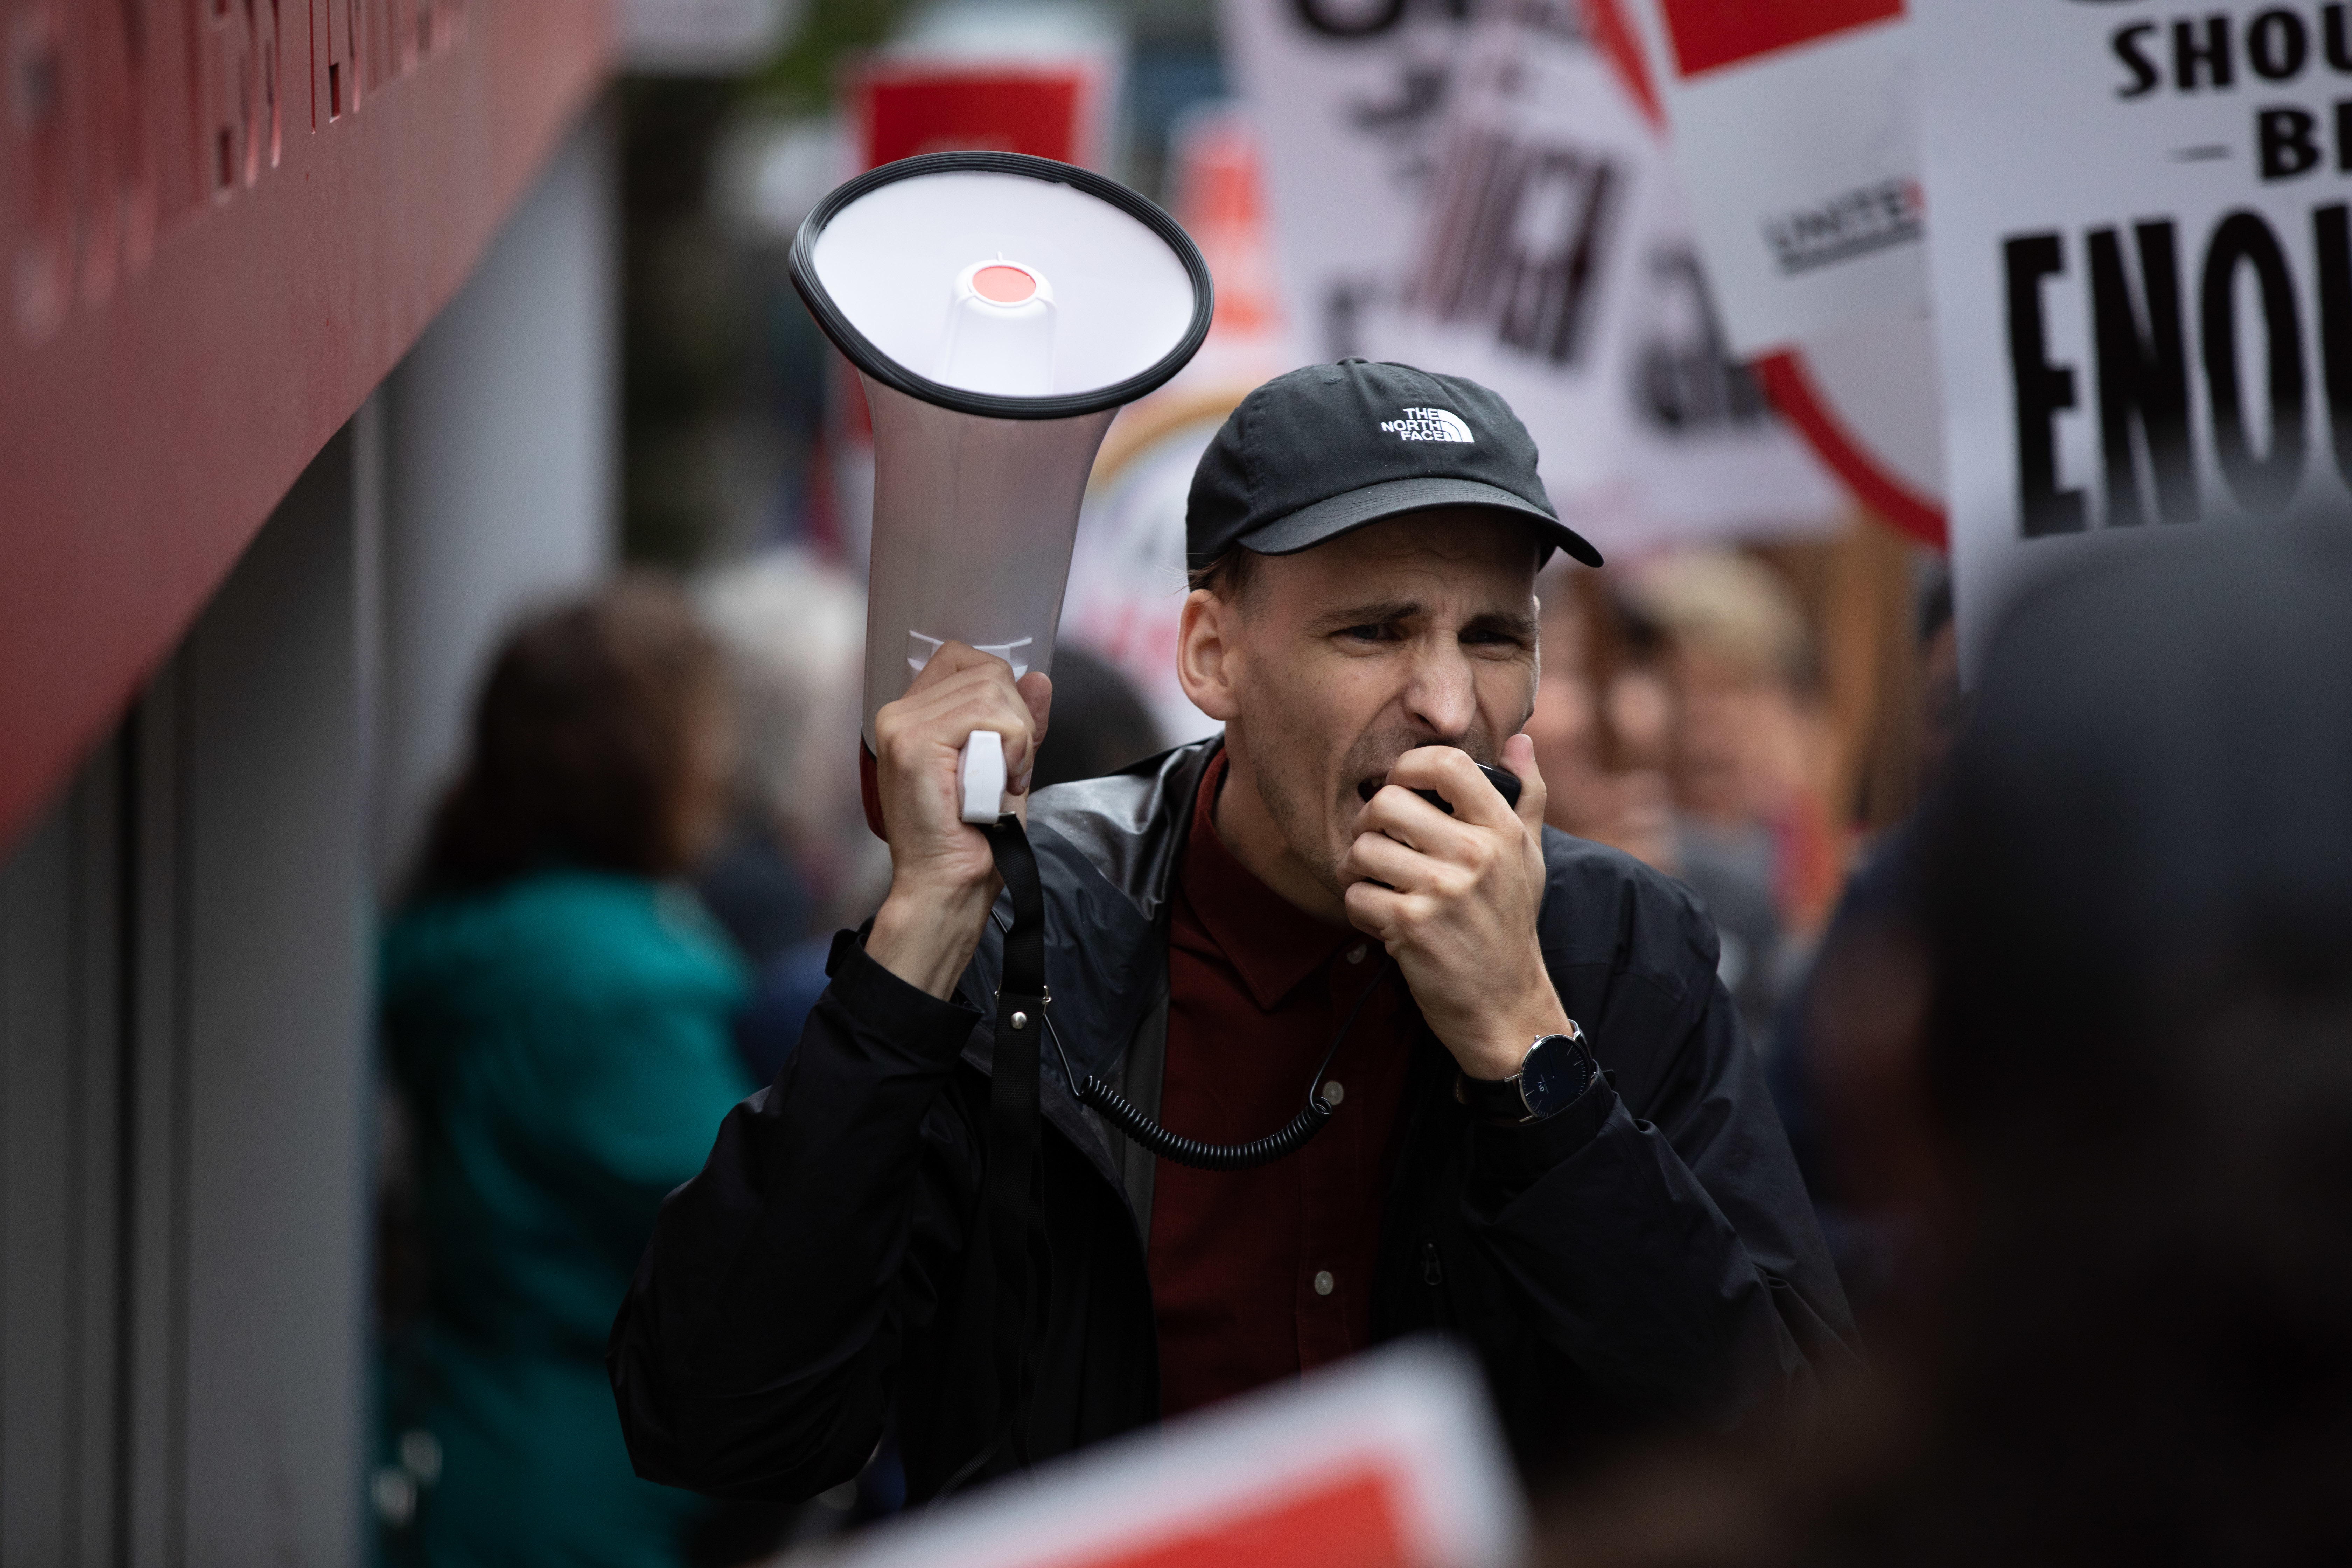 Vancouver's downtown hospitality workers from the Hotel Georgia, Hyatt, Westin Bayshore and Pinnacle Harbourfront hotels walk off the job in a coordinated lunch-hour strike outside the Hyatt Regency Hotel in Vancouver on Sept. 17, 2019. (Maggie MacPherson/CBC)